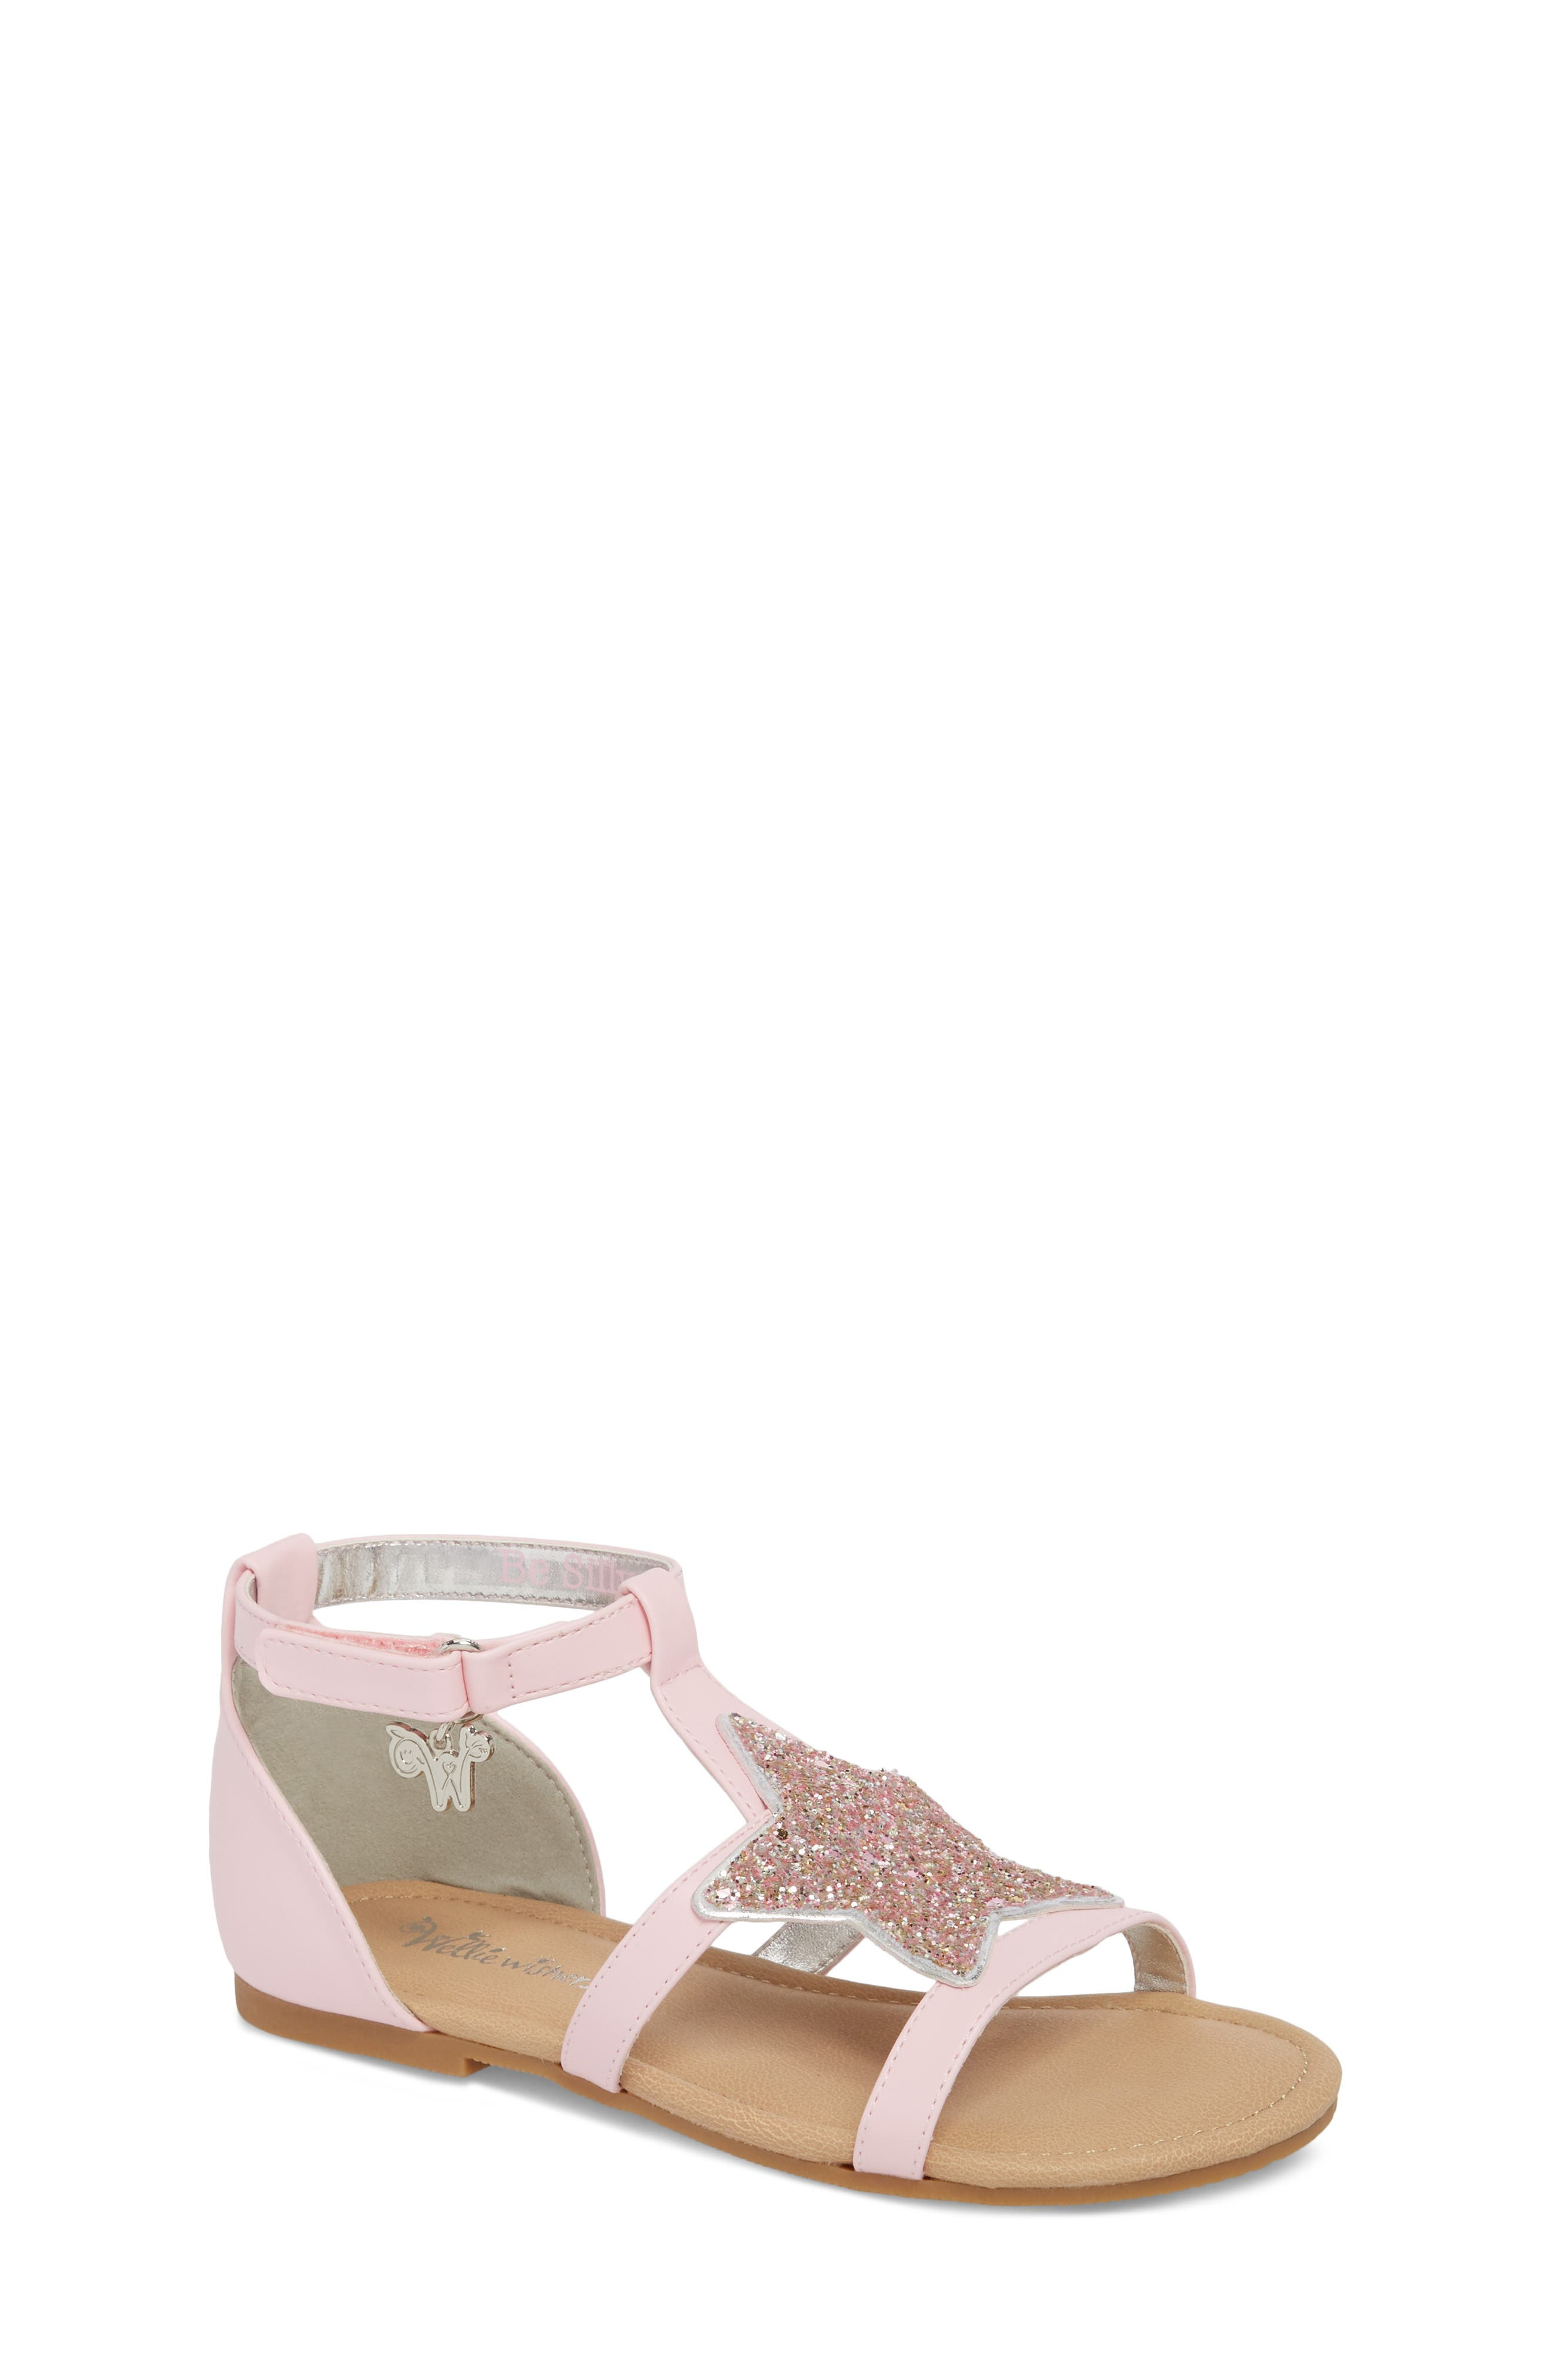 Emerson Glitter Star Sandal,                             Main thumbnail 1, color,                             Orchid Pink